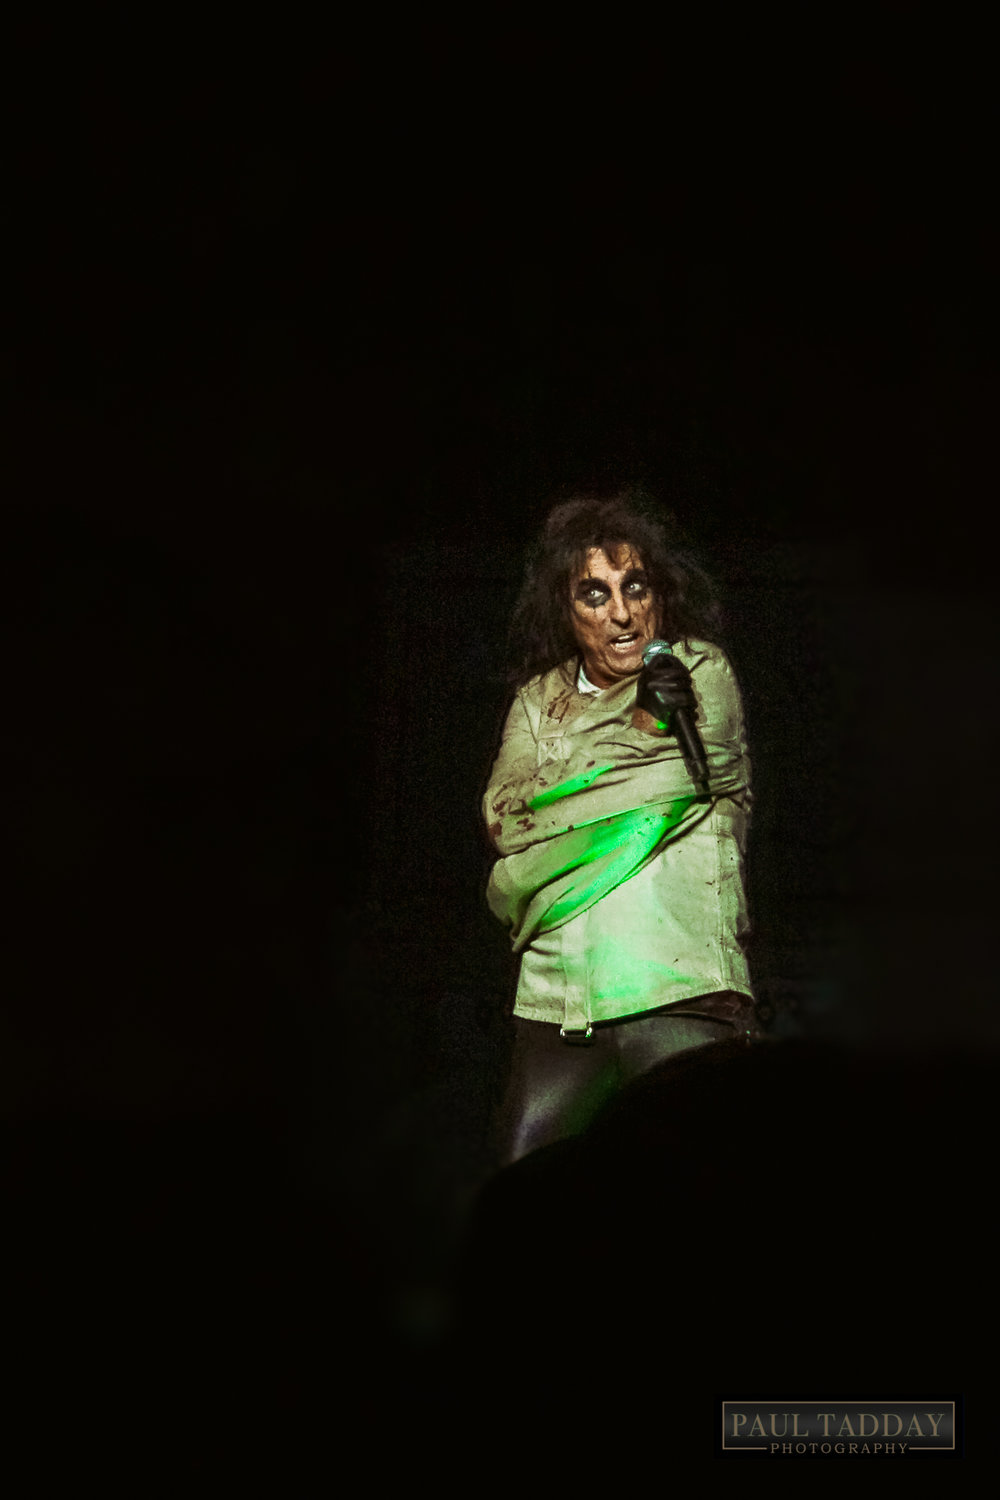 alice cooper - melbourne - paul tadday photography - 201017 - 46.jpg